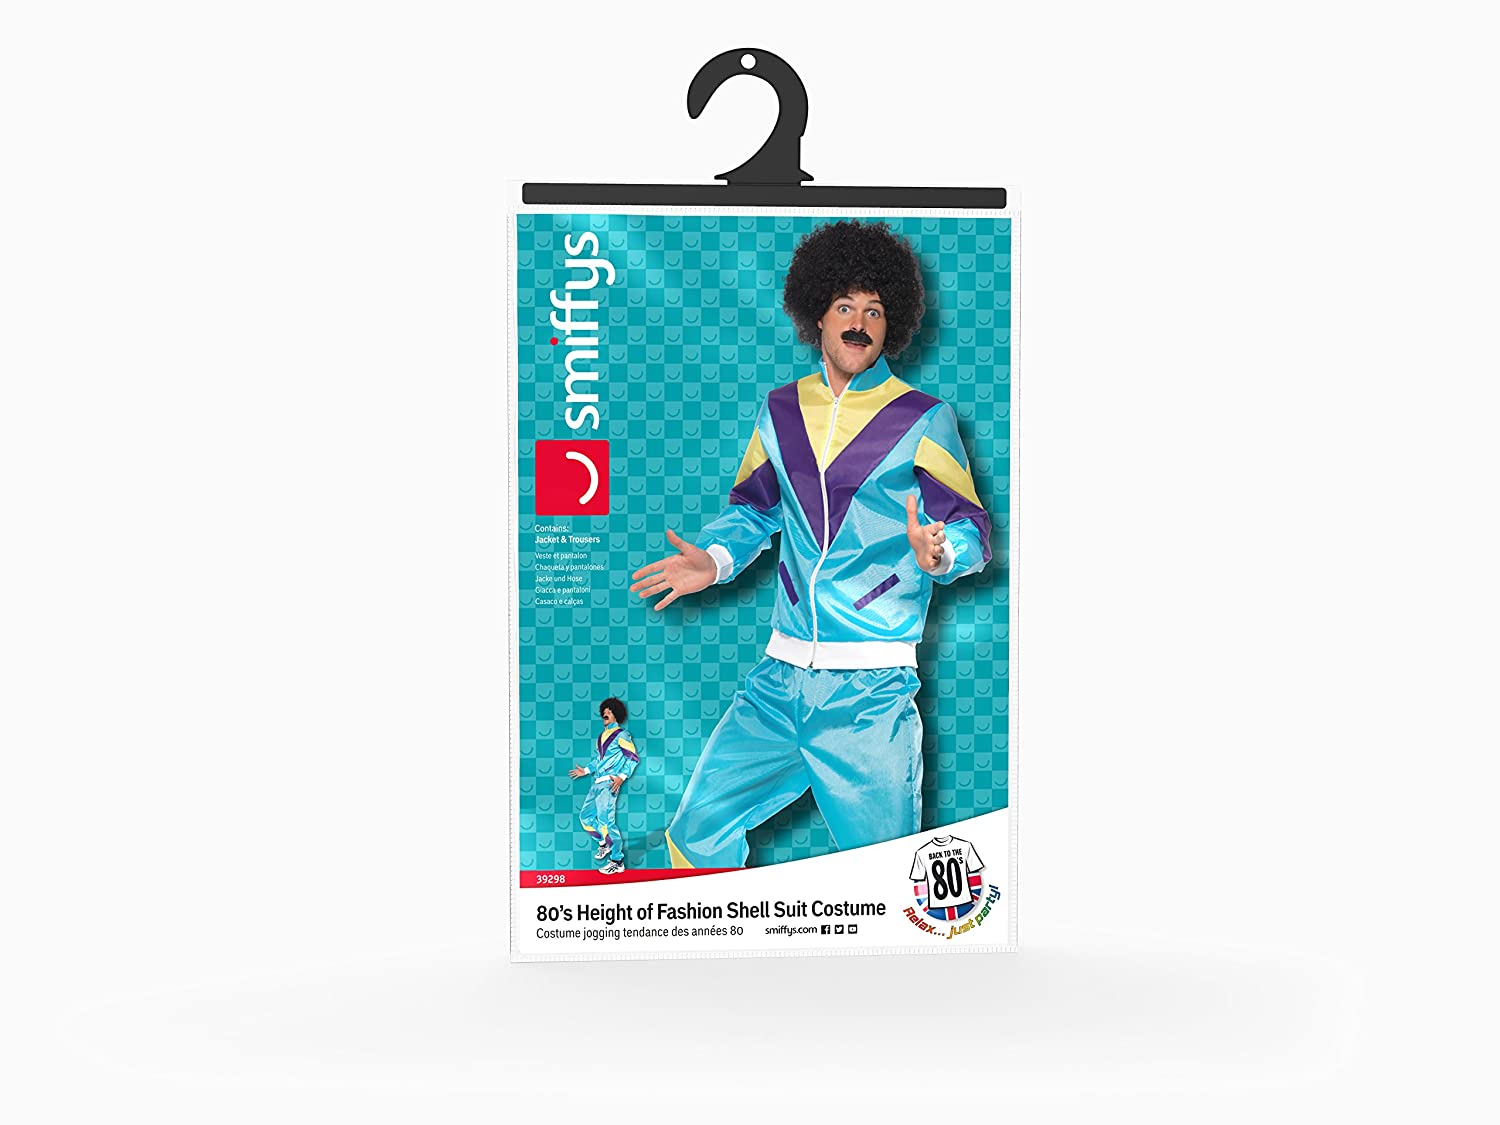 Amazon.com: Smiffys Mens 80s Height of Fashion Shell Suit Costume, Jacket and pants, Back to the 80s, Serious Fun, Size L, 39298: Clothing